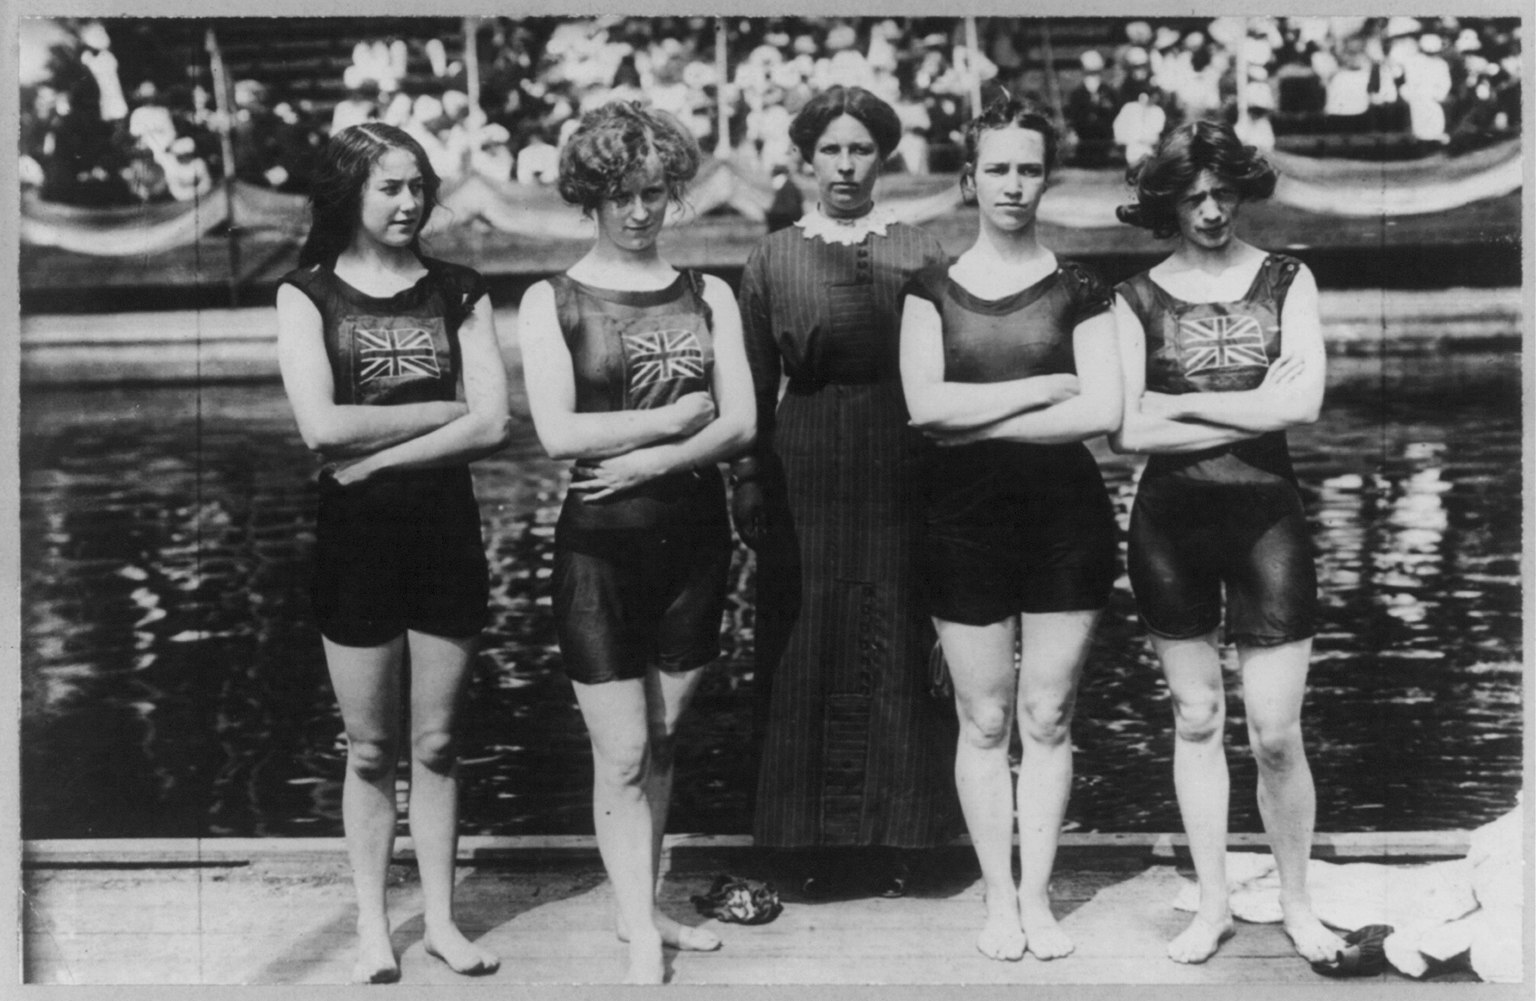 british_freestyle_relay_swim_team_that_won_the_olympic_gold_medal_in_1912_lccn2003677466.jpg